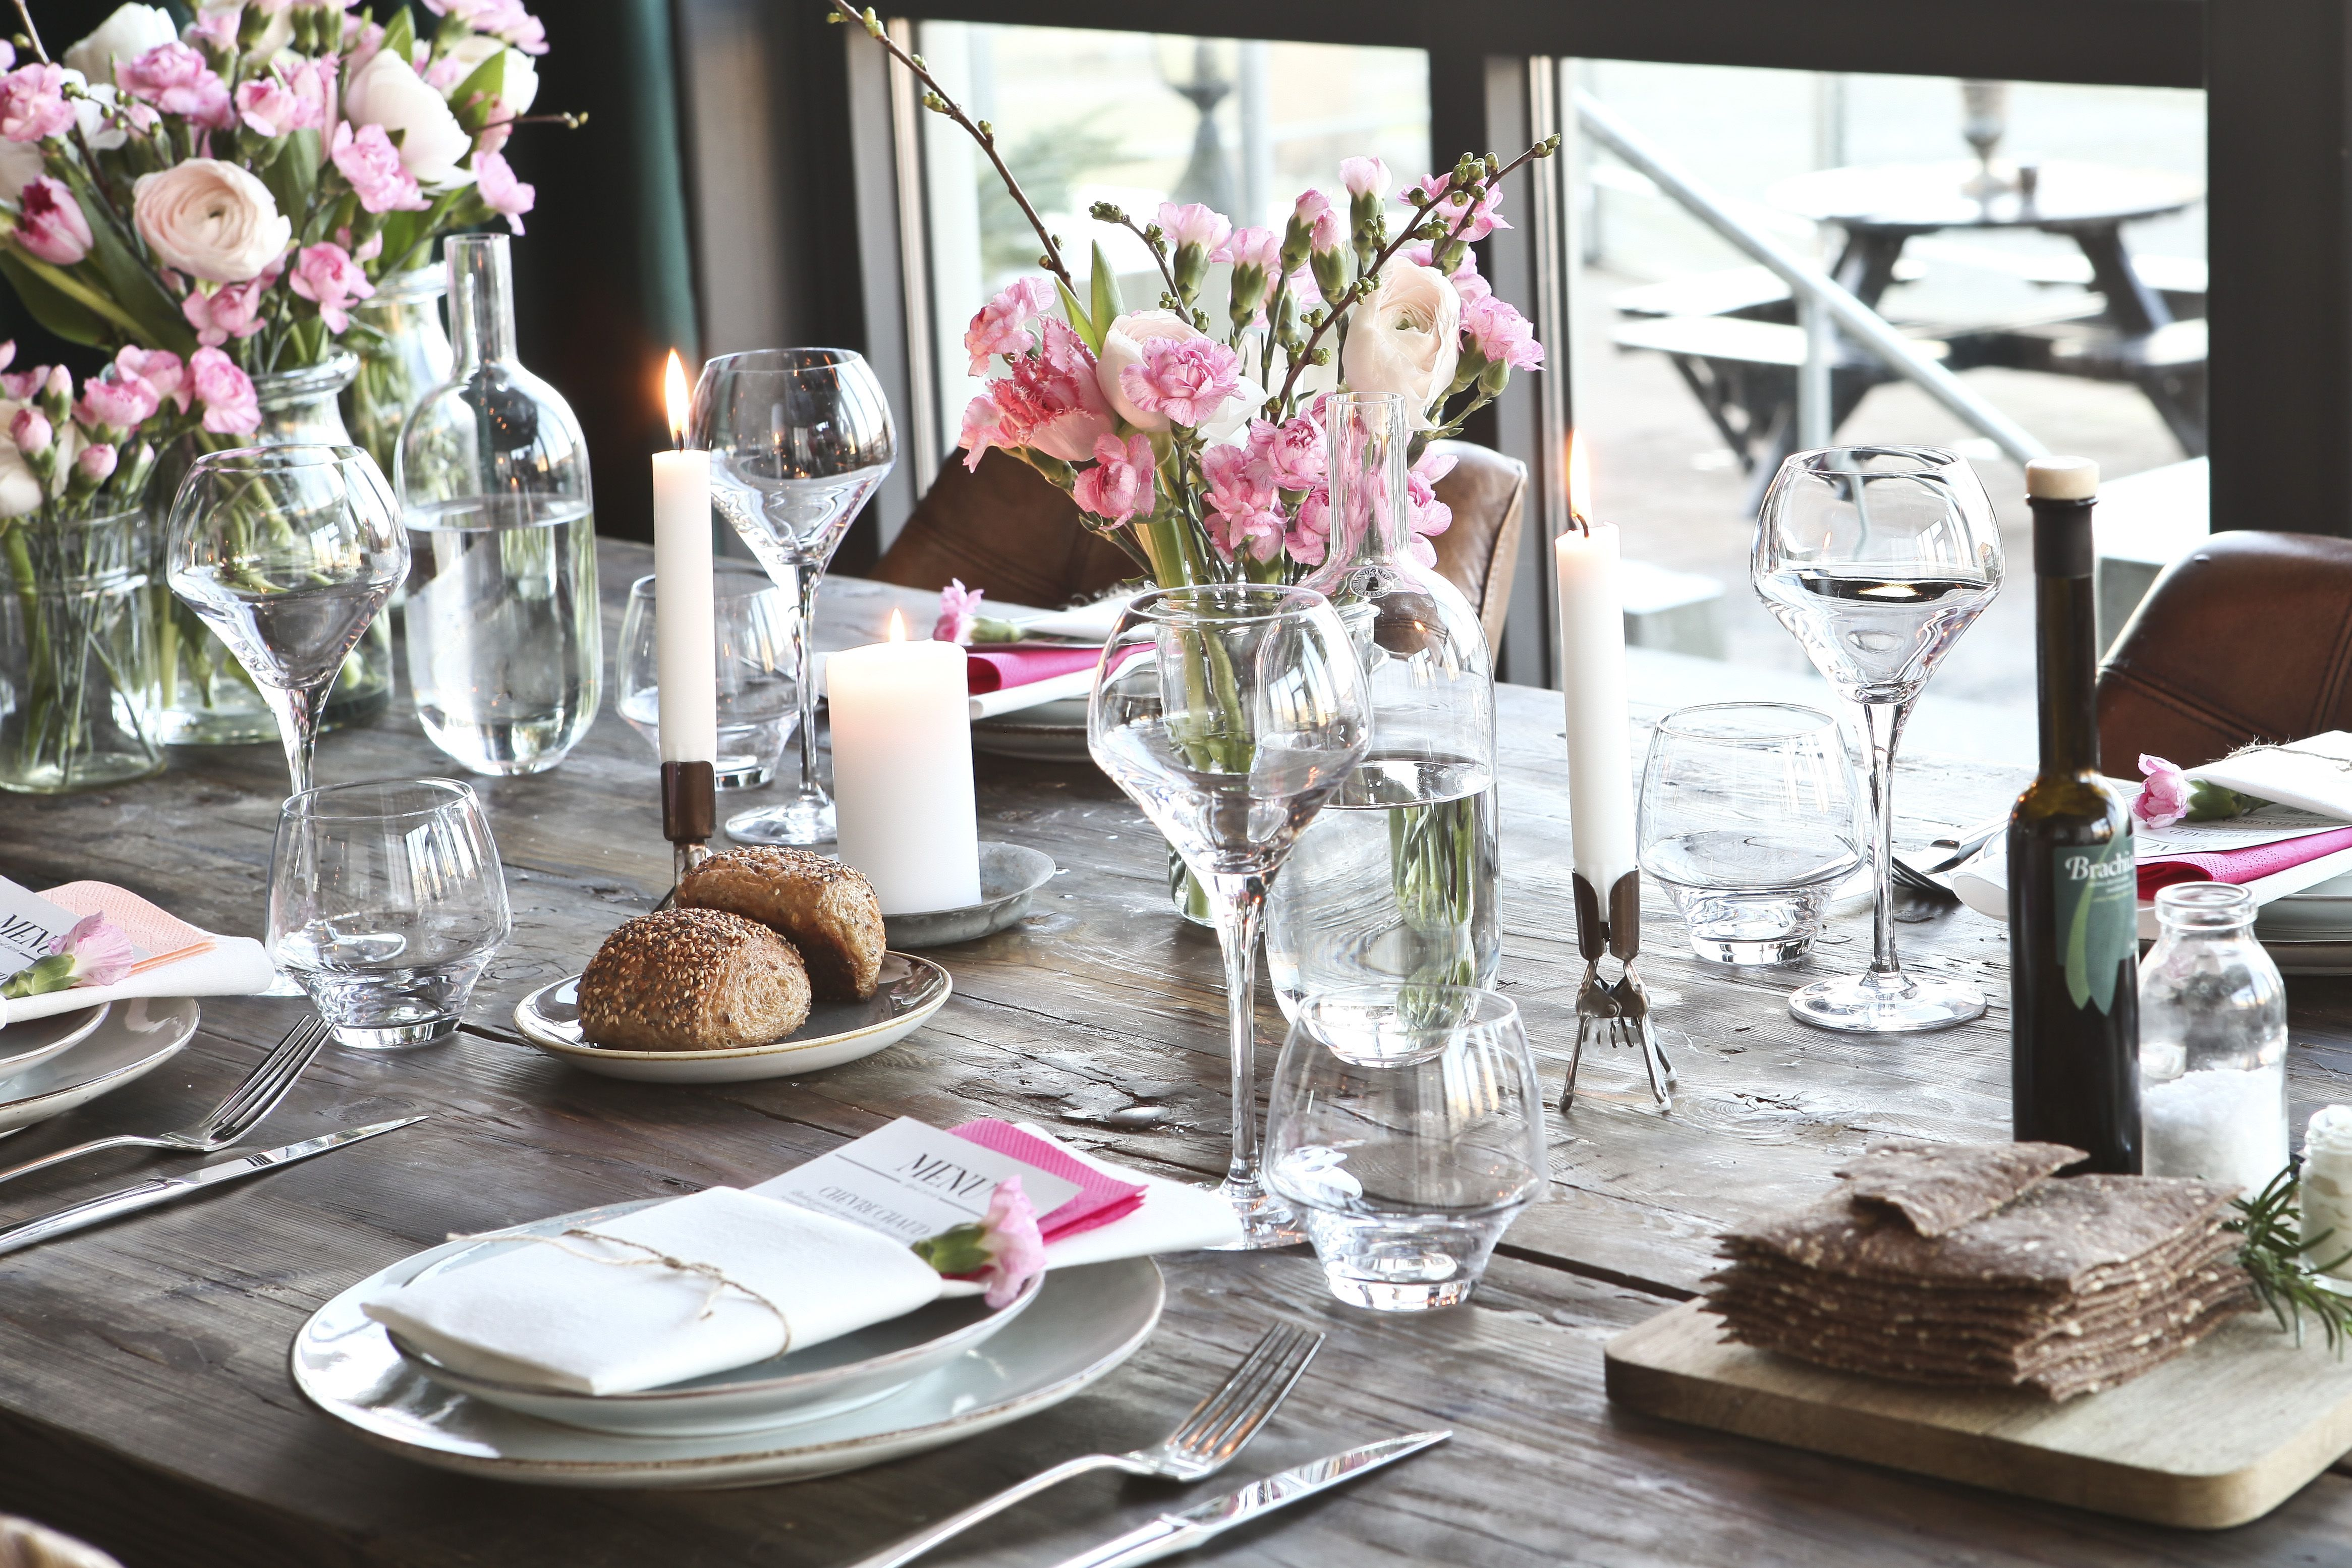 Our Spring Table Settings Looks Gorgeous With Tork Linstyle Napkins